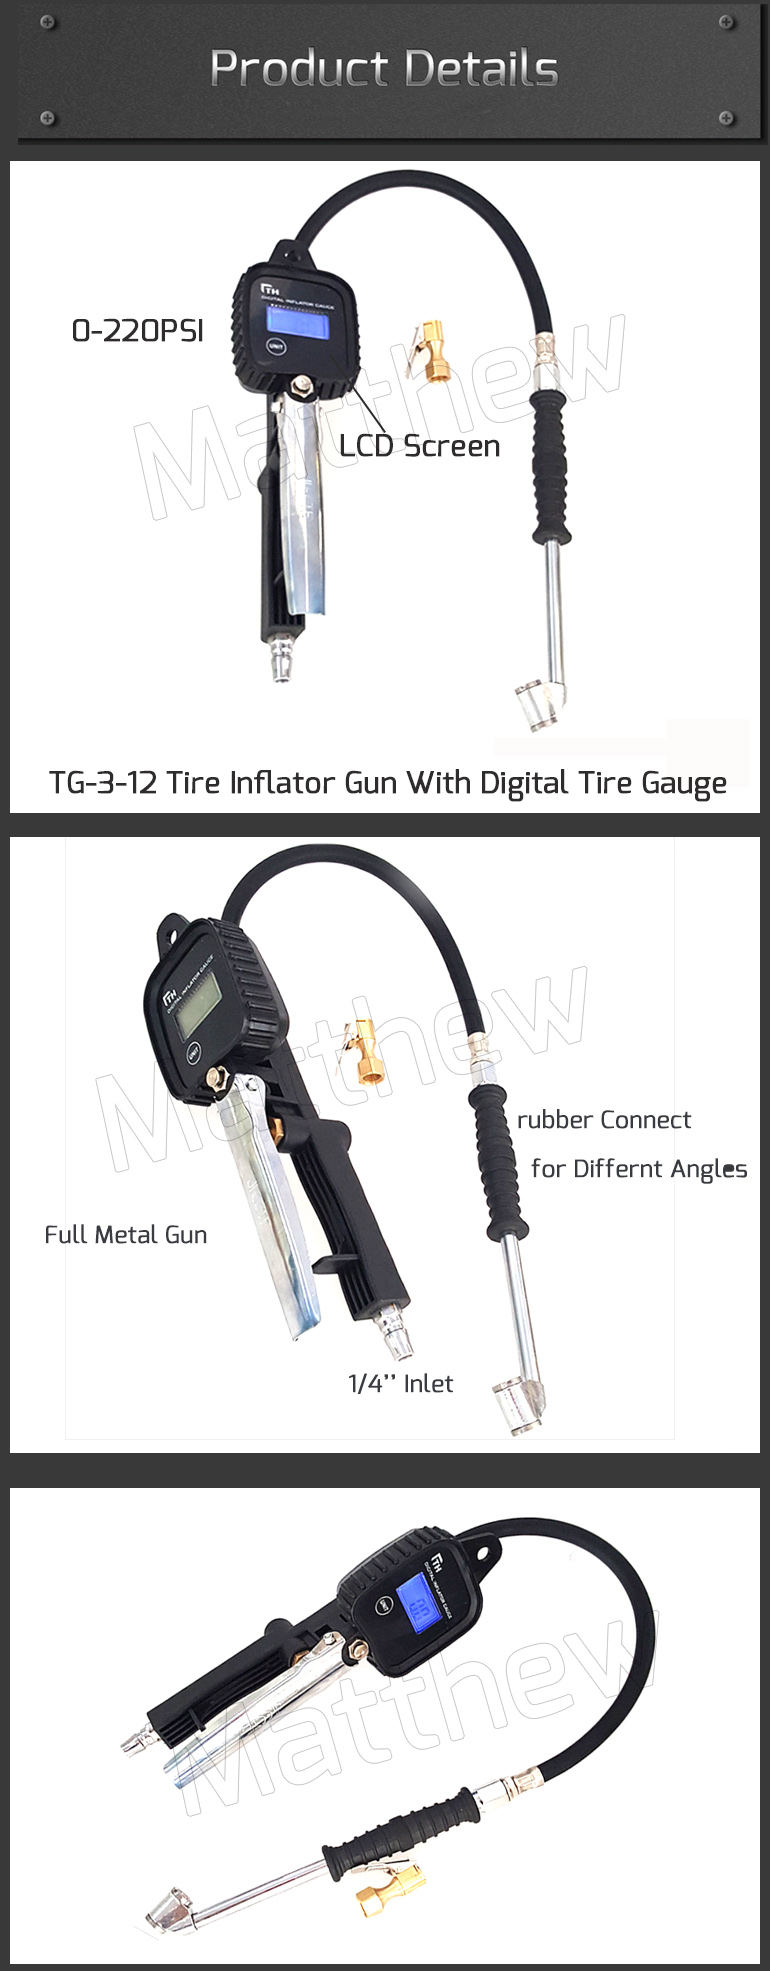 Tire Inflator Gun with Digital Tire Gauge